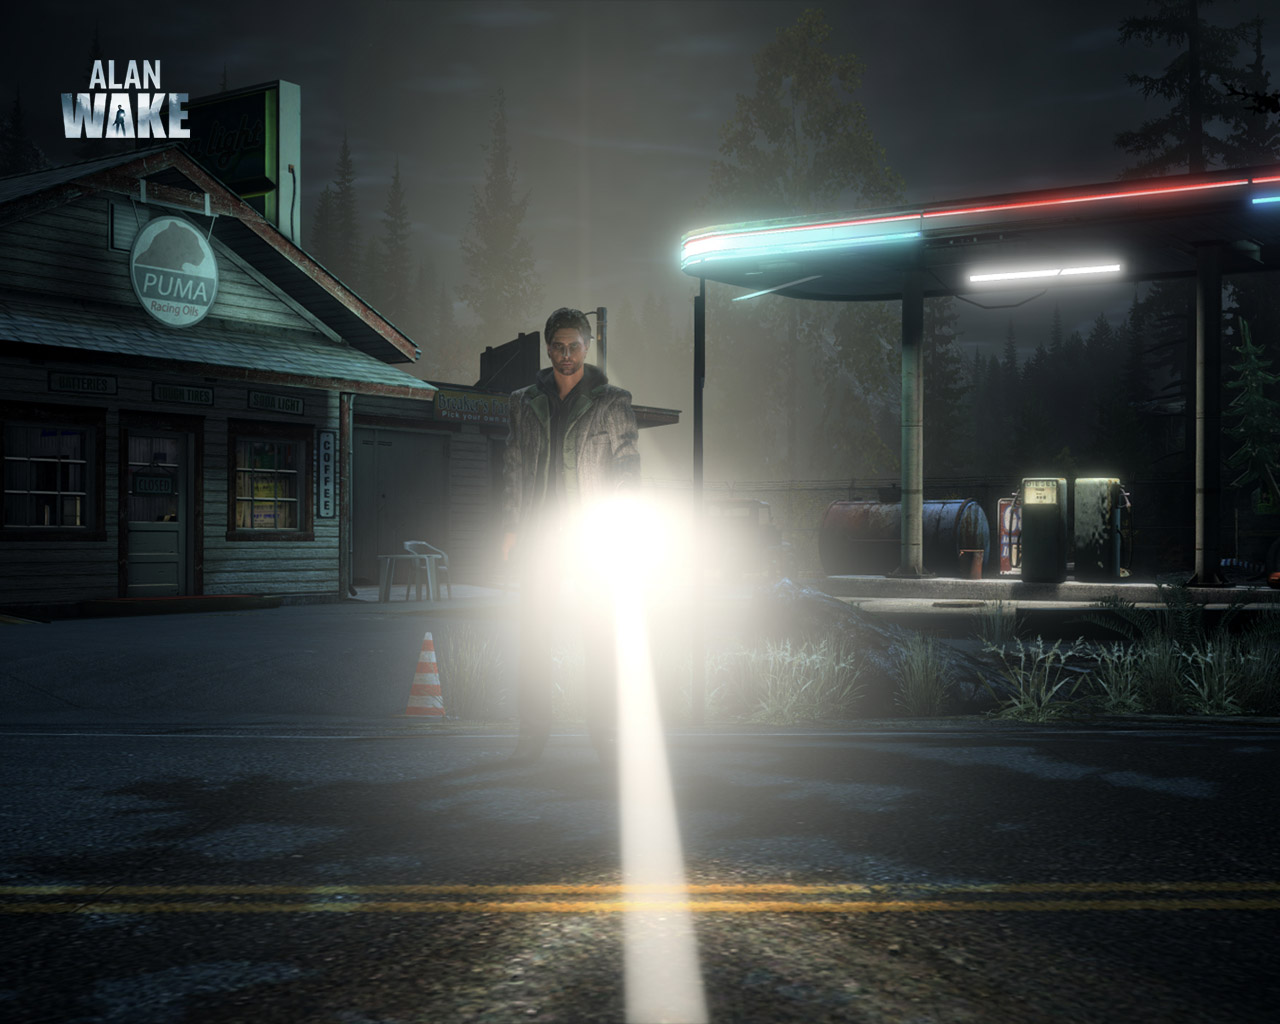 Free Alan Wake Wallpaper in 1280x1024